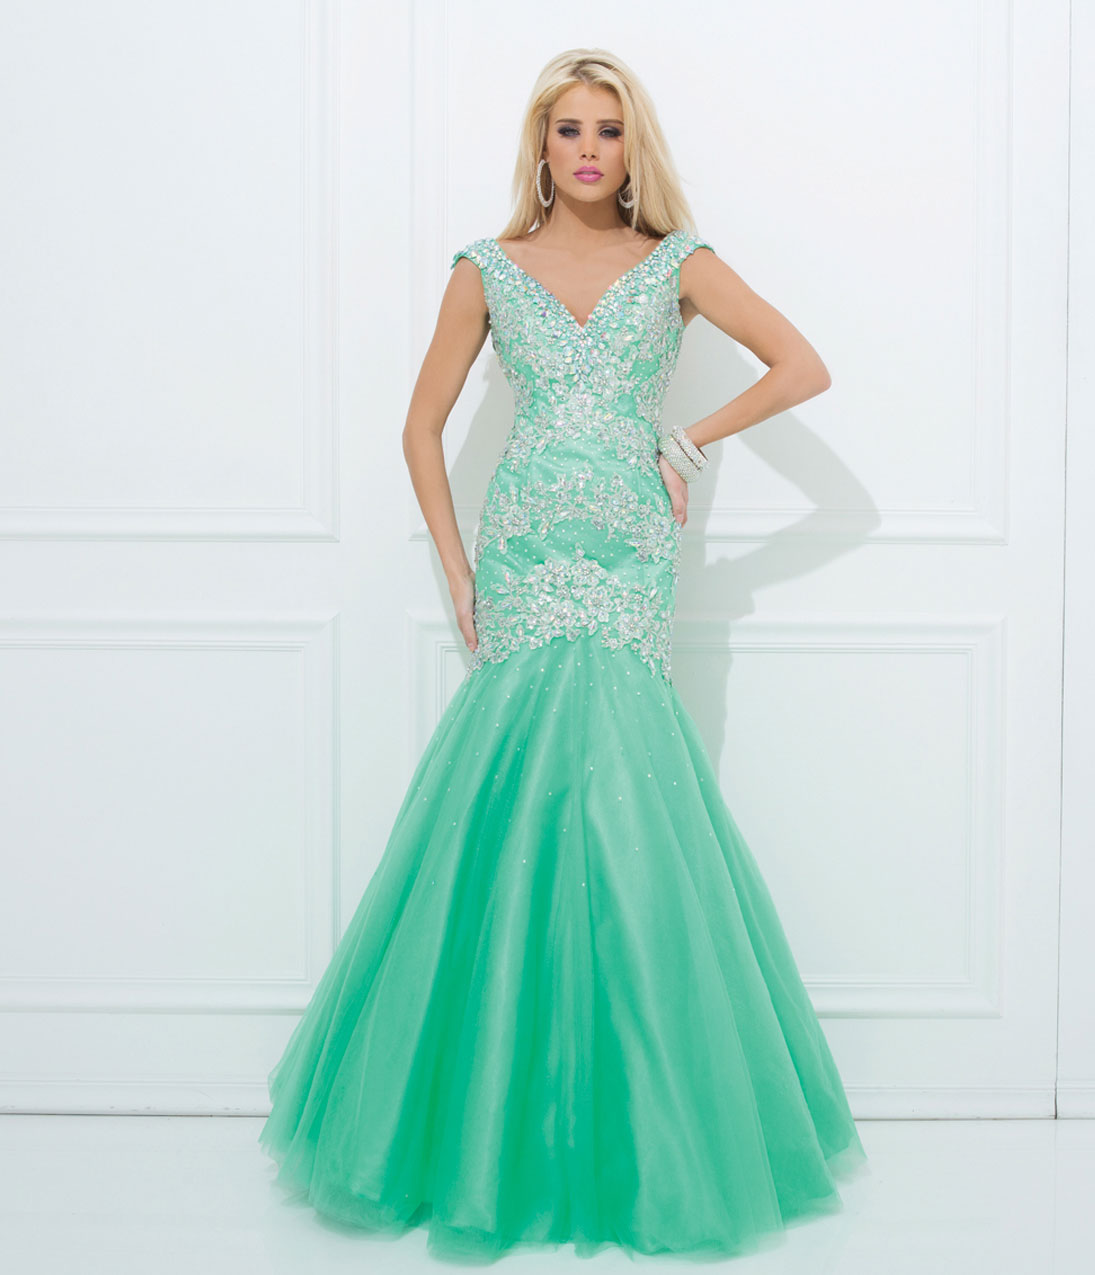 green christmas dresses for women images 20142015